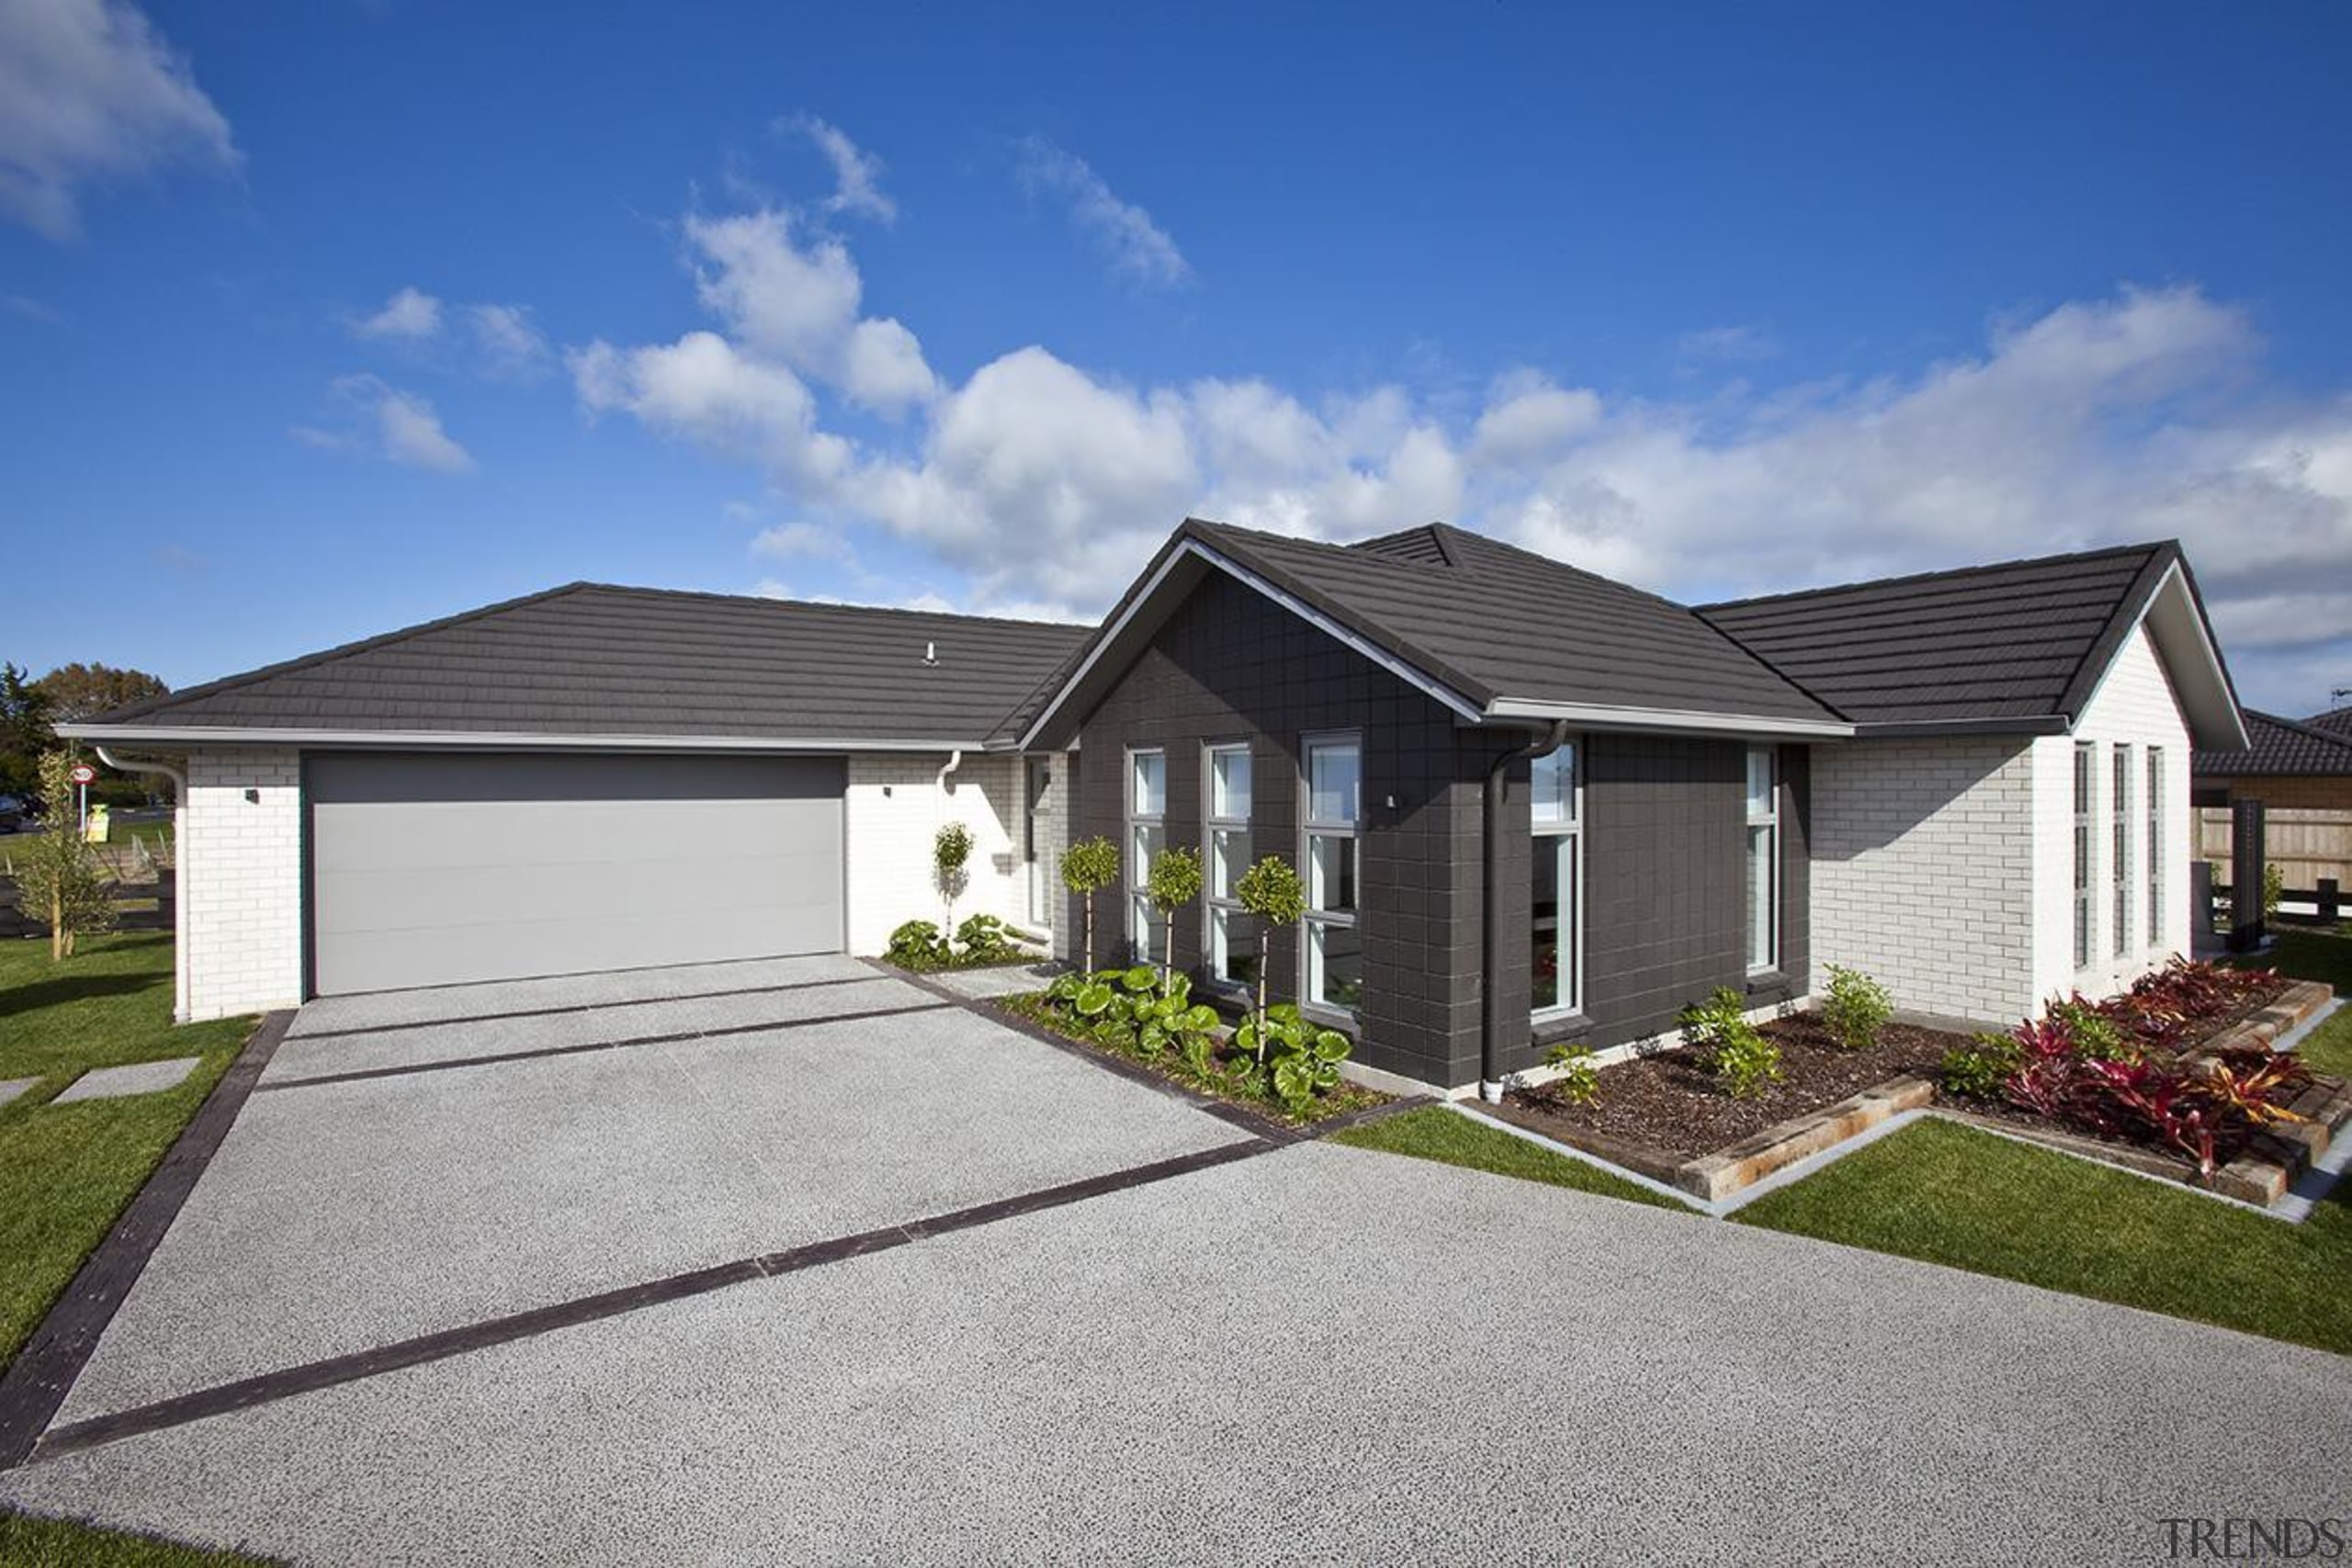 For more information, please visit www.gjgardner.co.nz building, cottage, elevation, estate, facade, home, house, property, real estate, residential area, roof, siding, suburb, yard, gray, blue